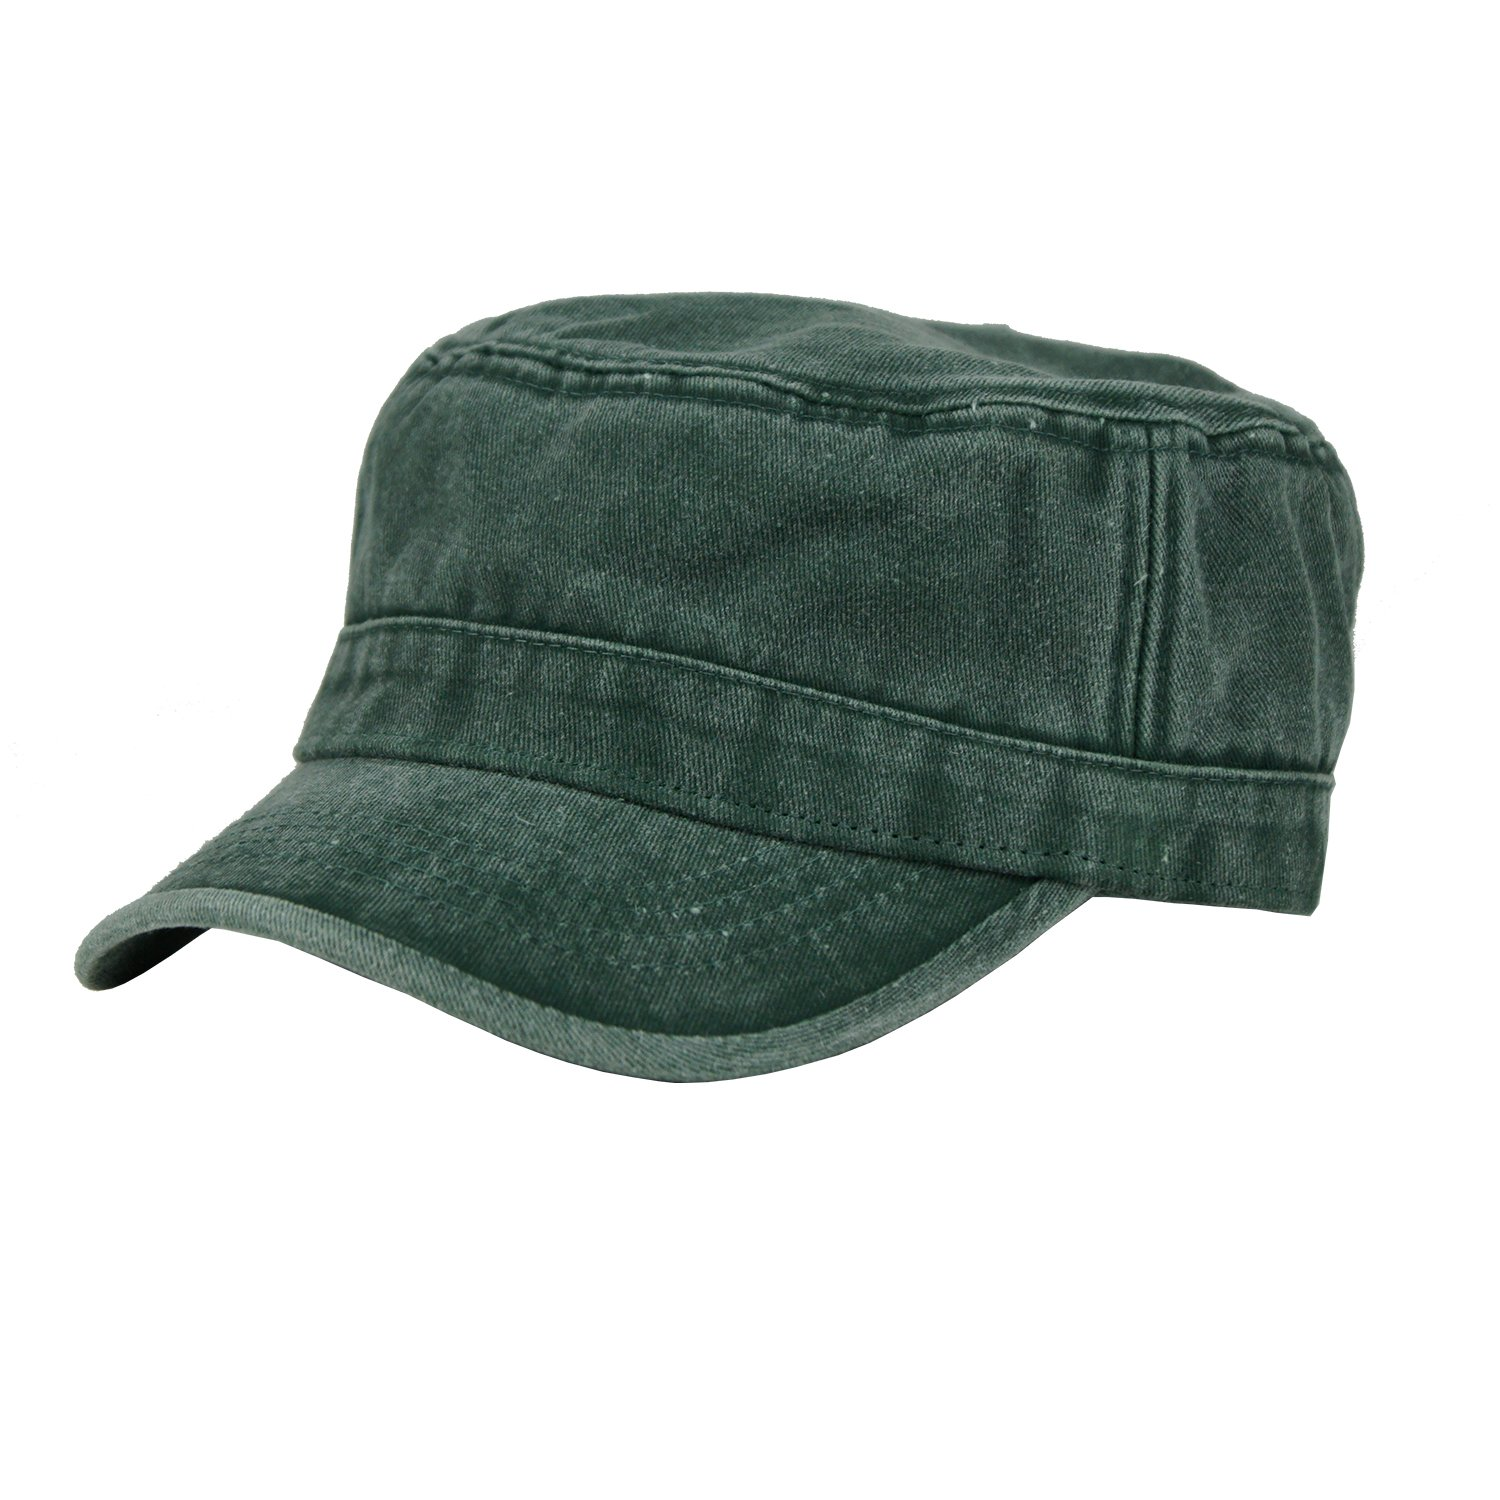 Free Bird 99 Low Profile Cotton Flat Top Peaked Army Military Cadet Cap Hat